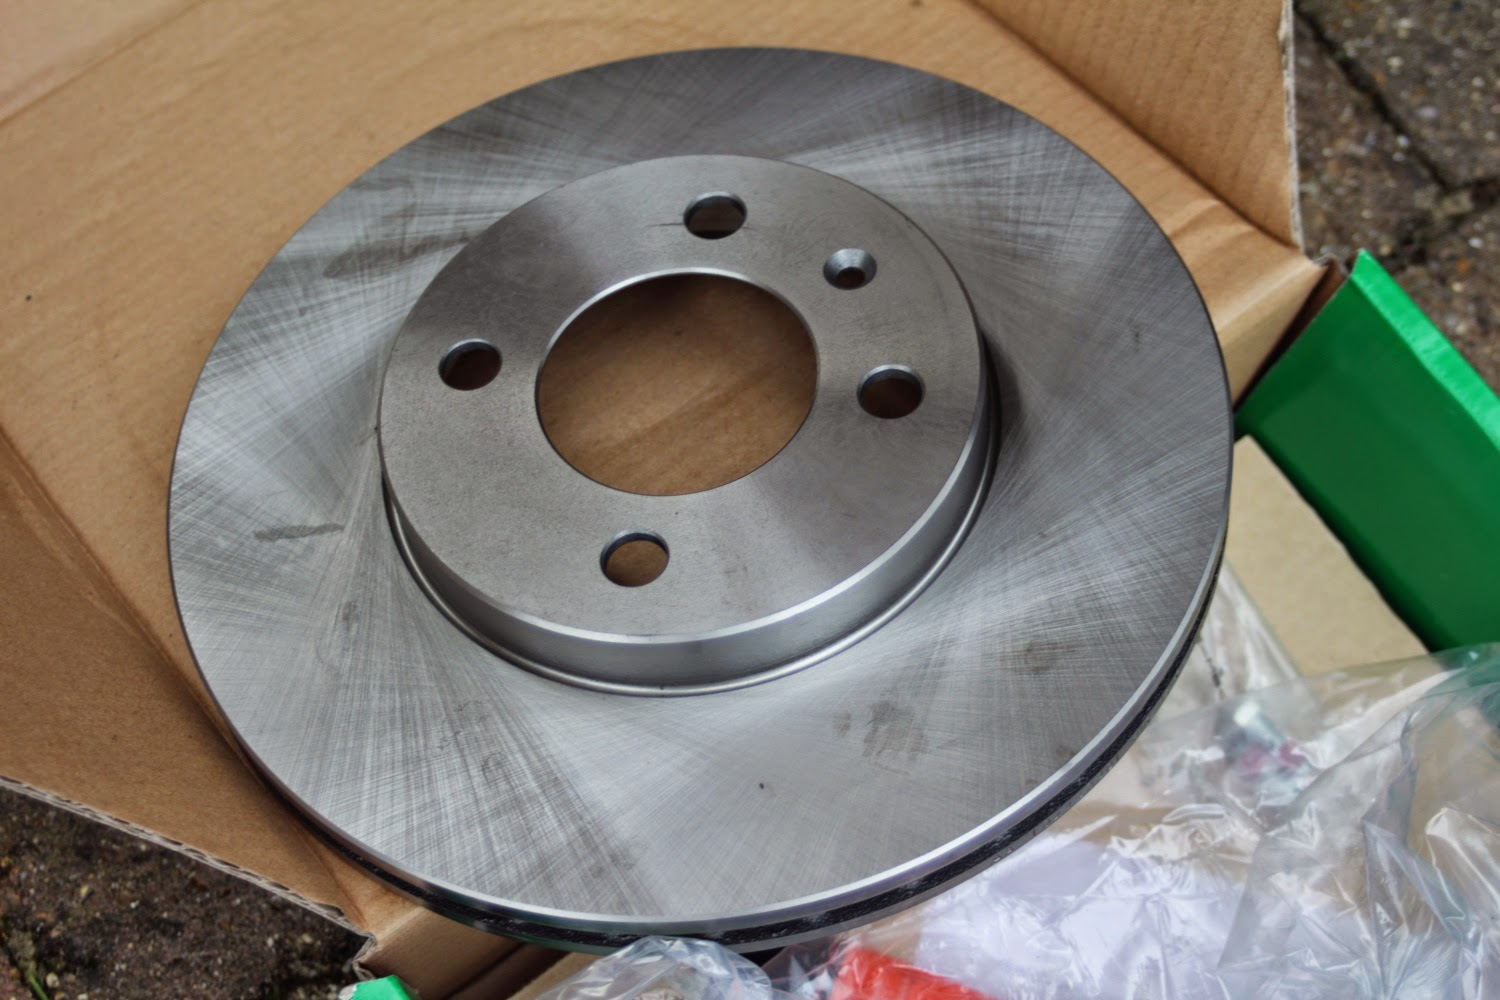 Golf MK2 GTi 16V New Brakes - Fitting New Discs and Pads